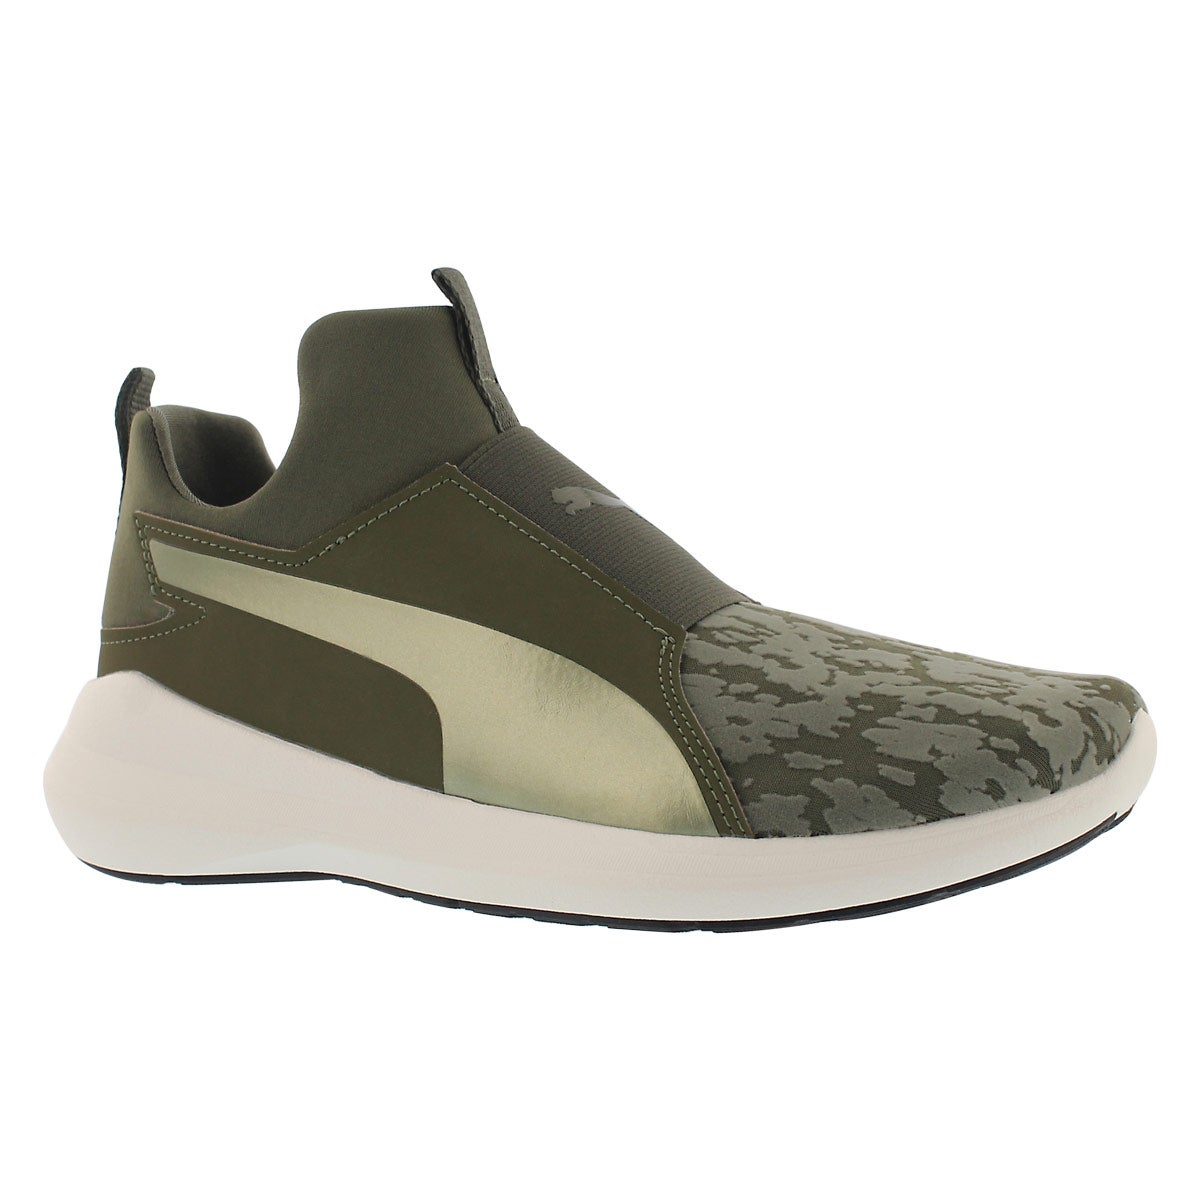 Women's REBEL MID VELVET ROPE olive sneakers